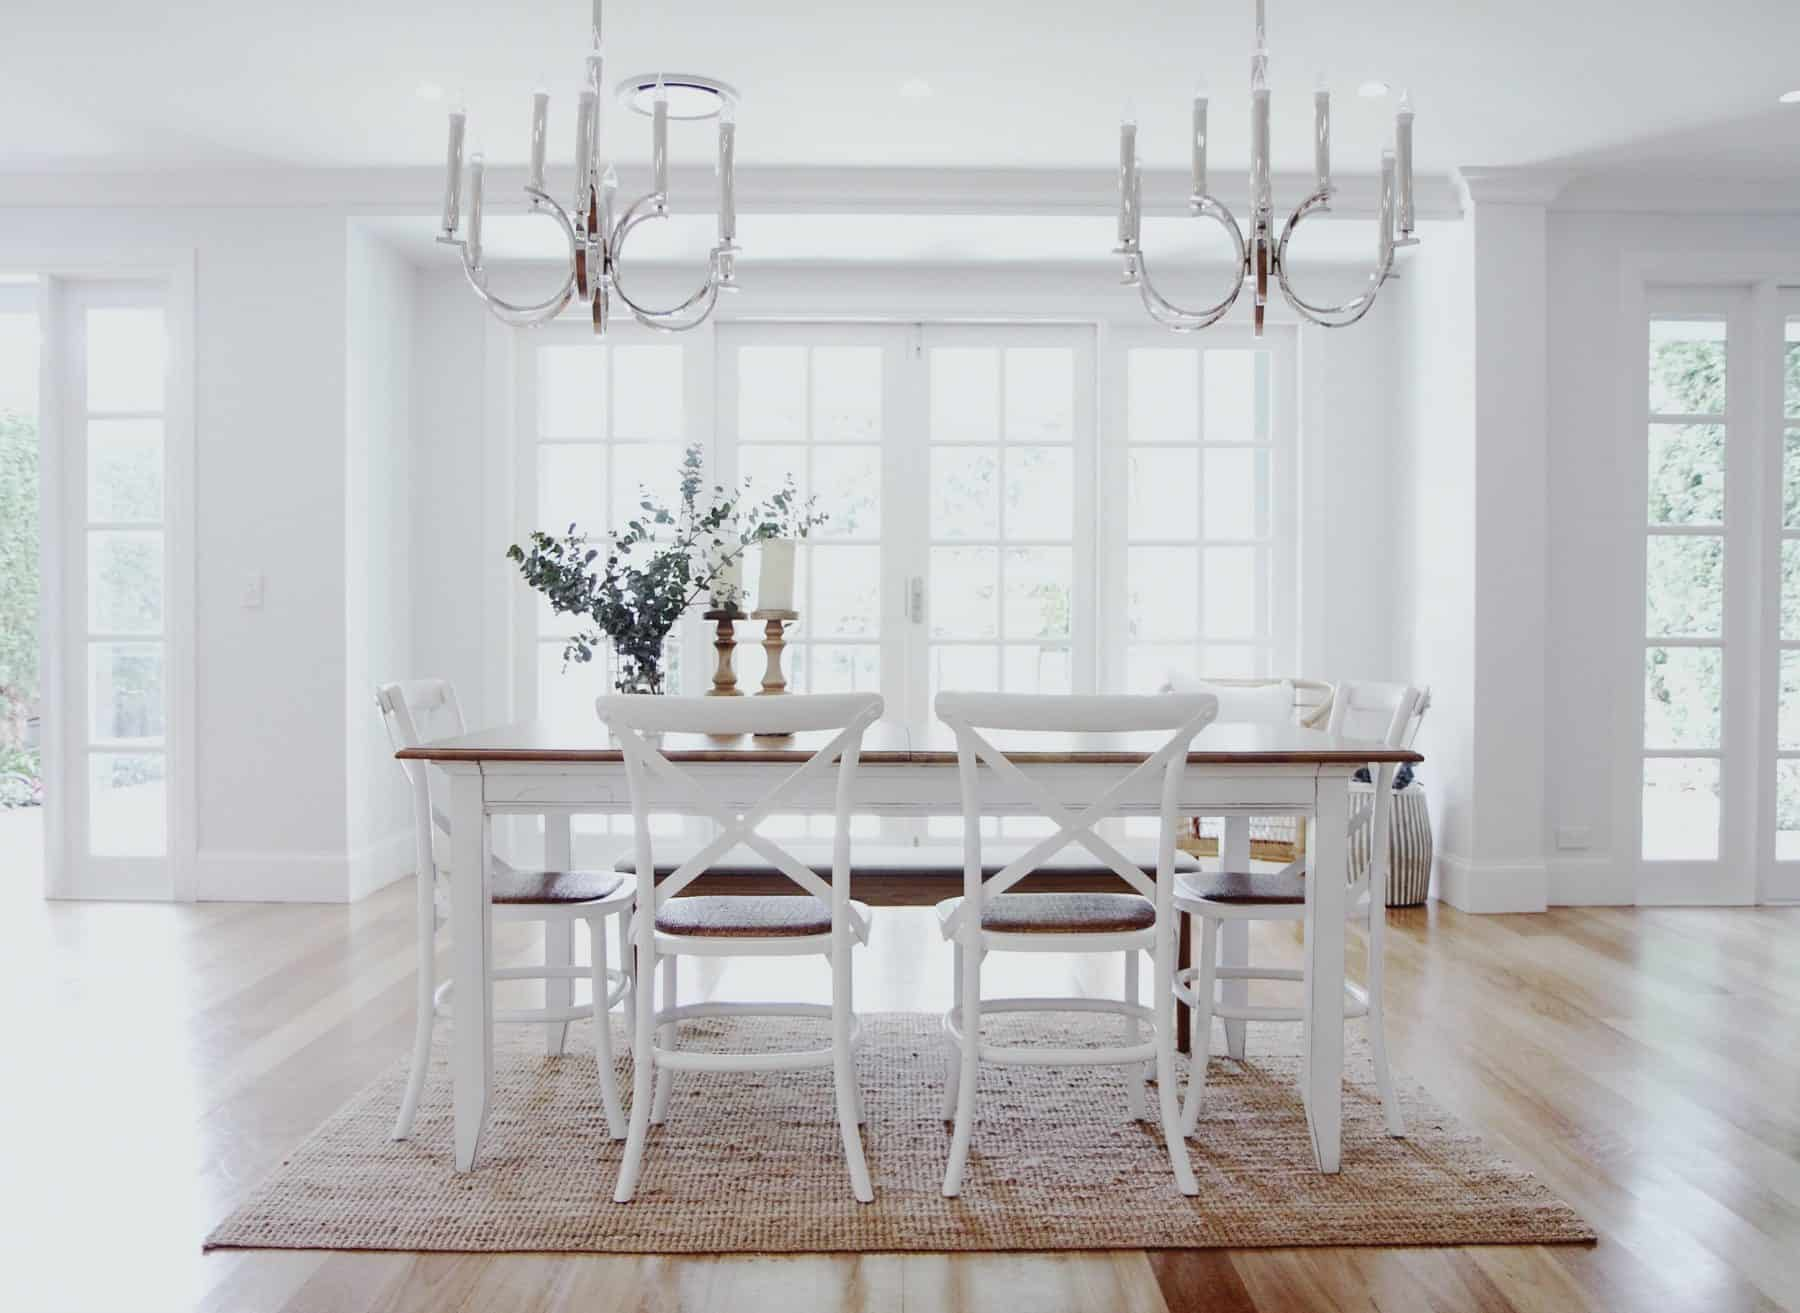 tips on how to renovate sydney integriti projects renovating mums